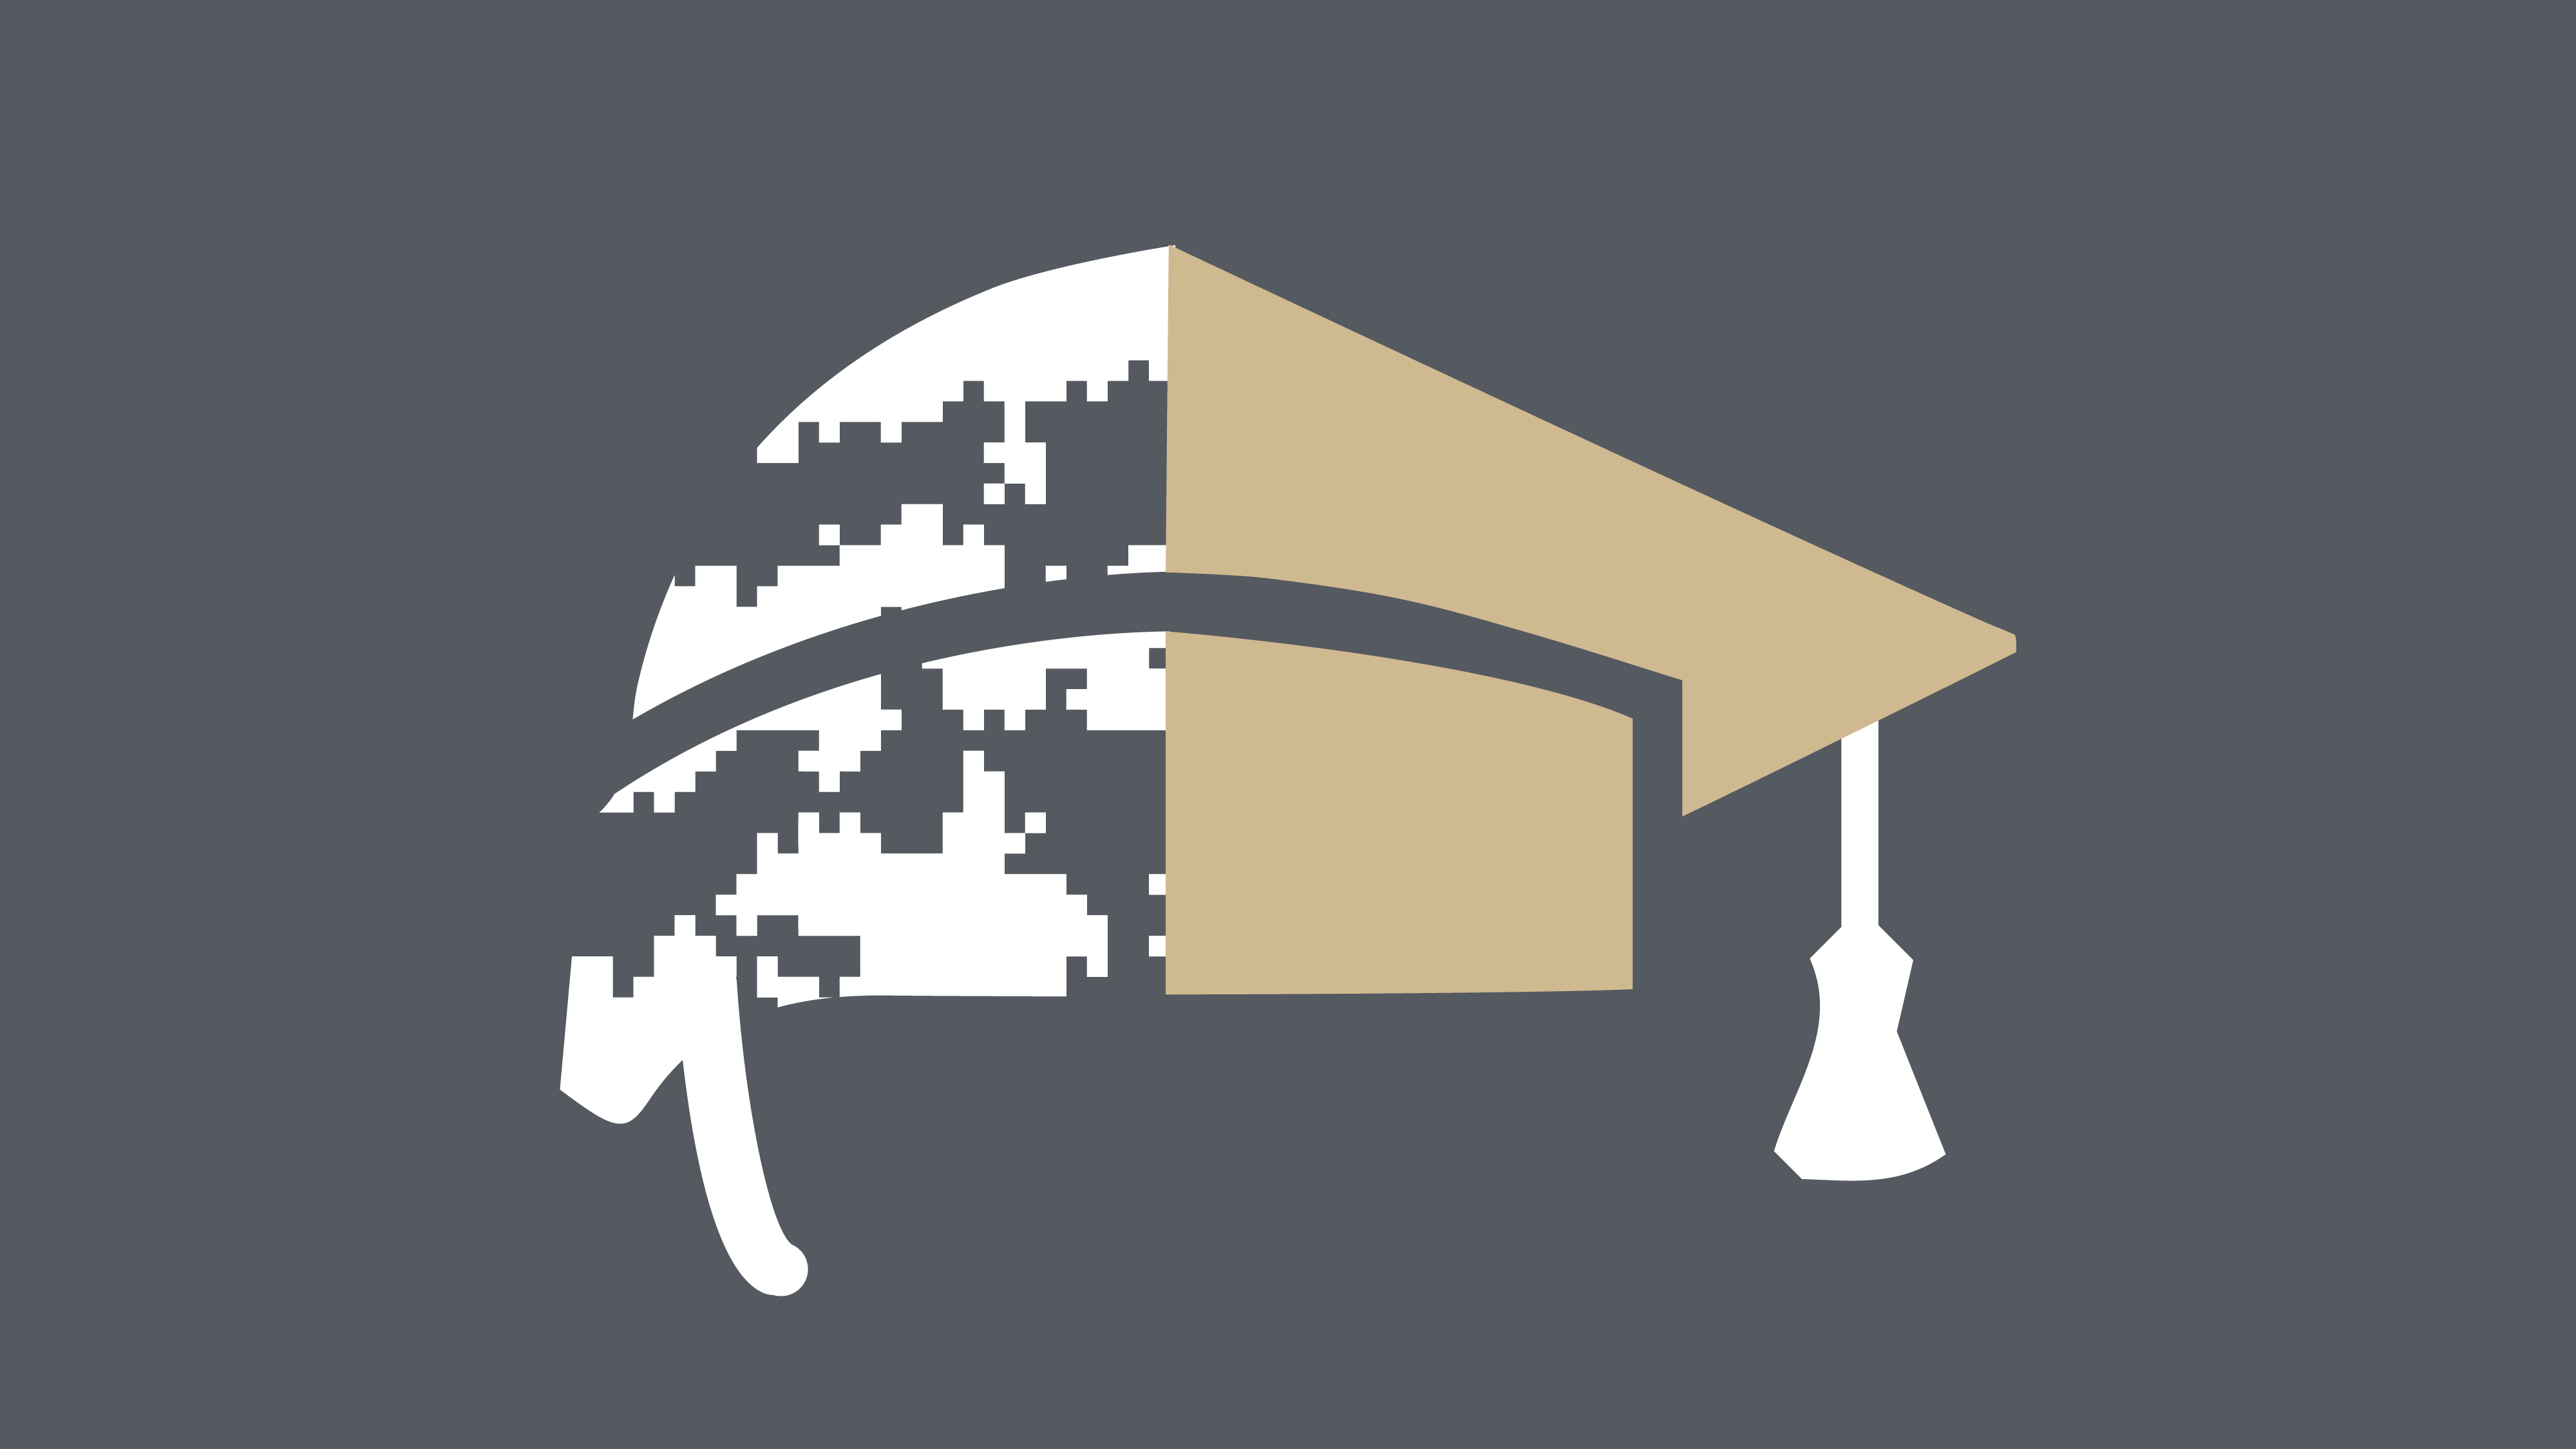 Focus Forward Fellowship icon: Half of a white military camouflage helmet, half of a gold graduation cap with a white tassel